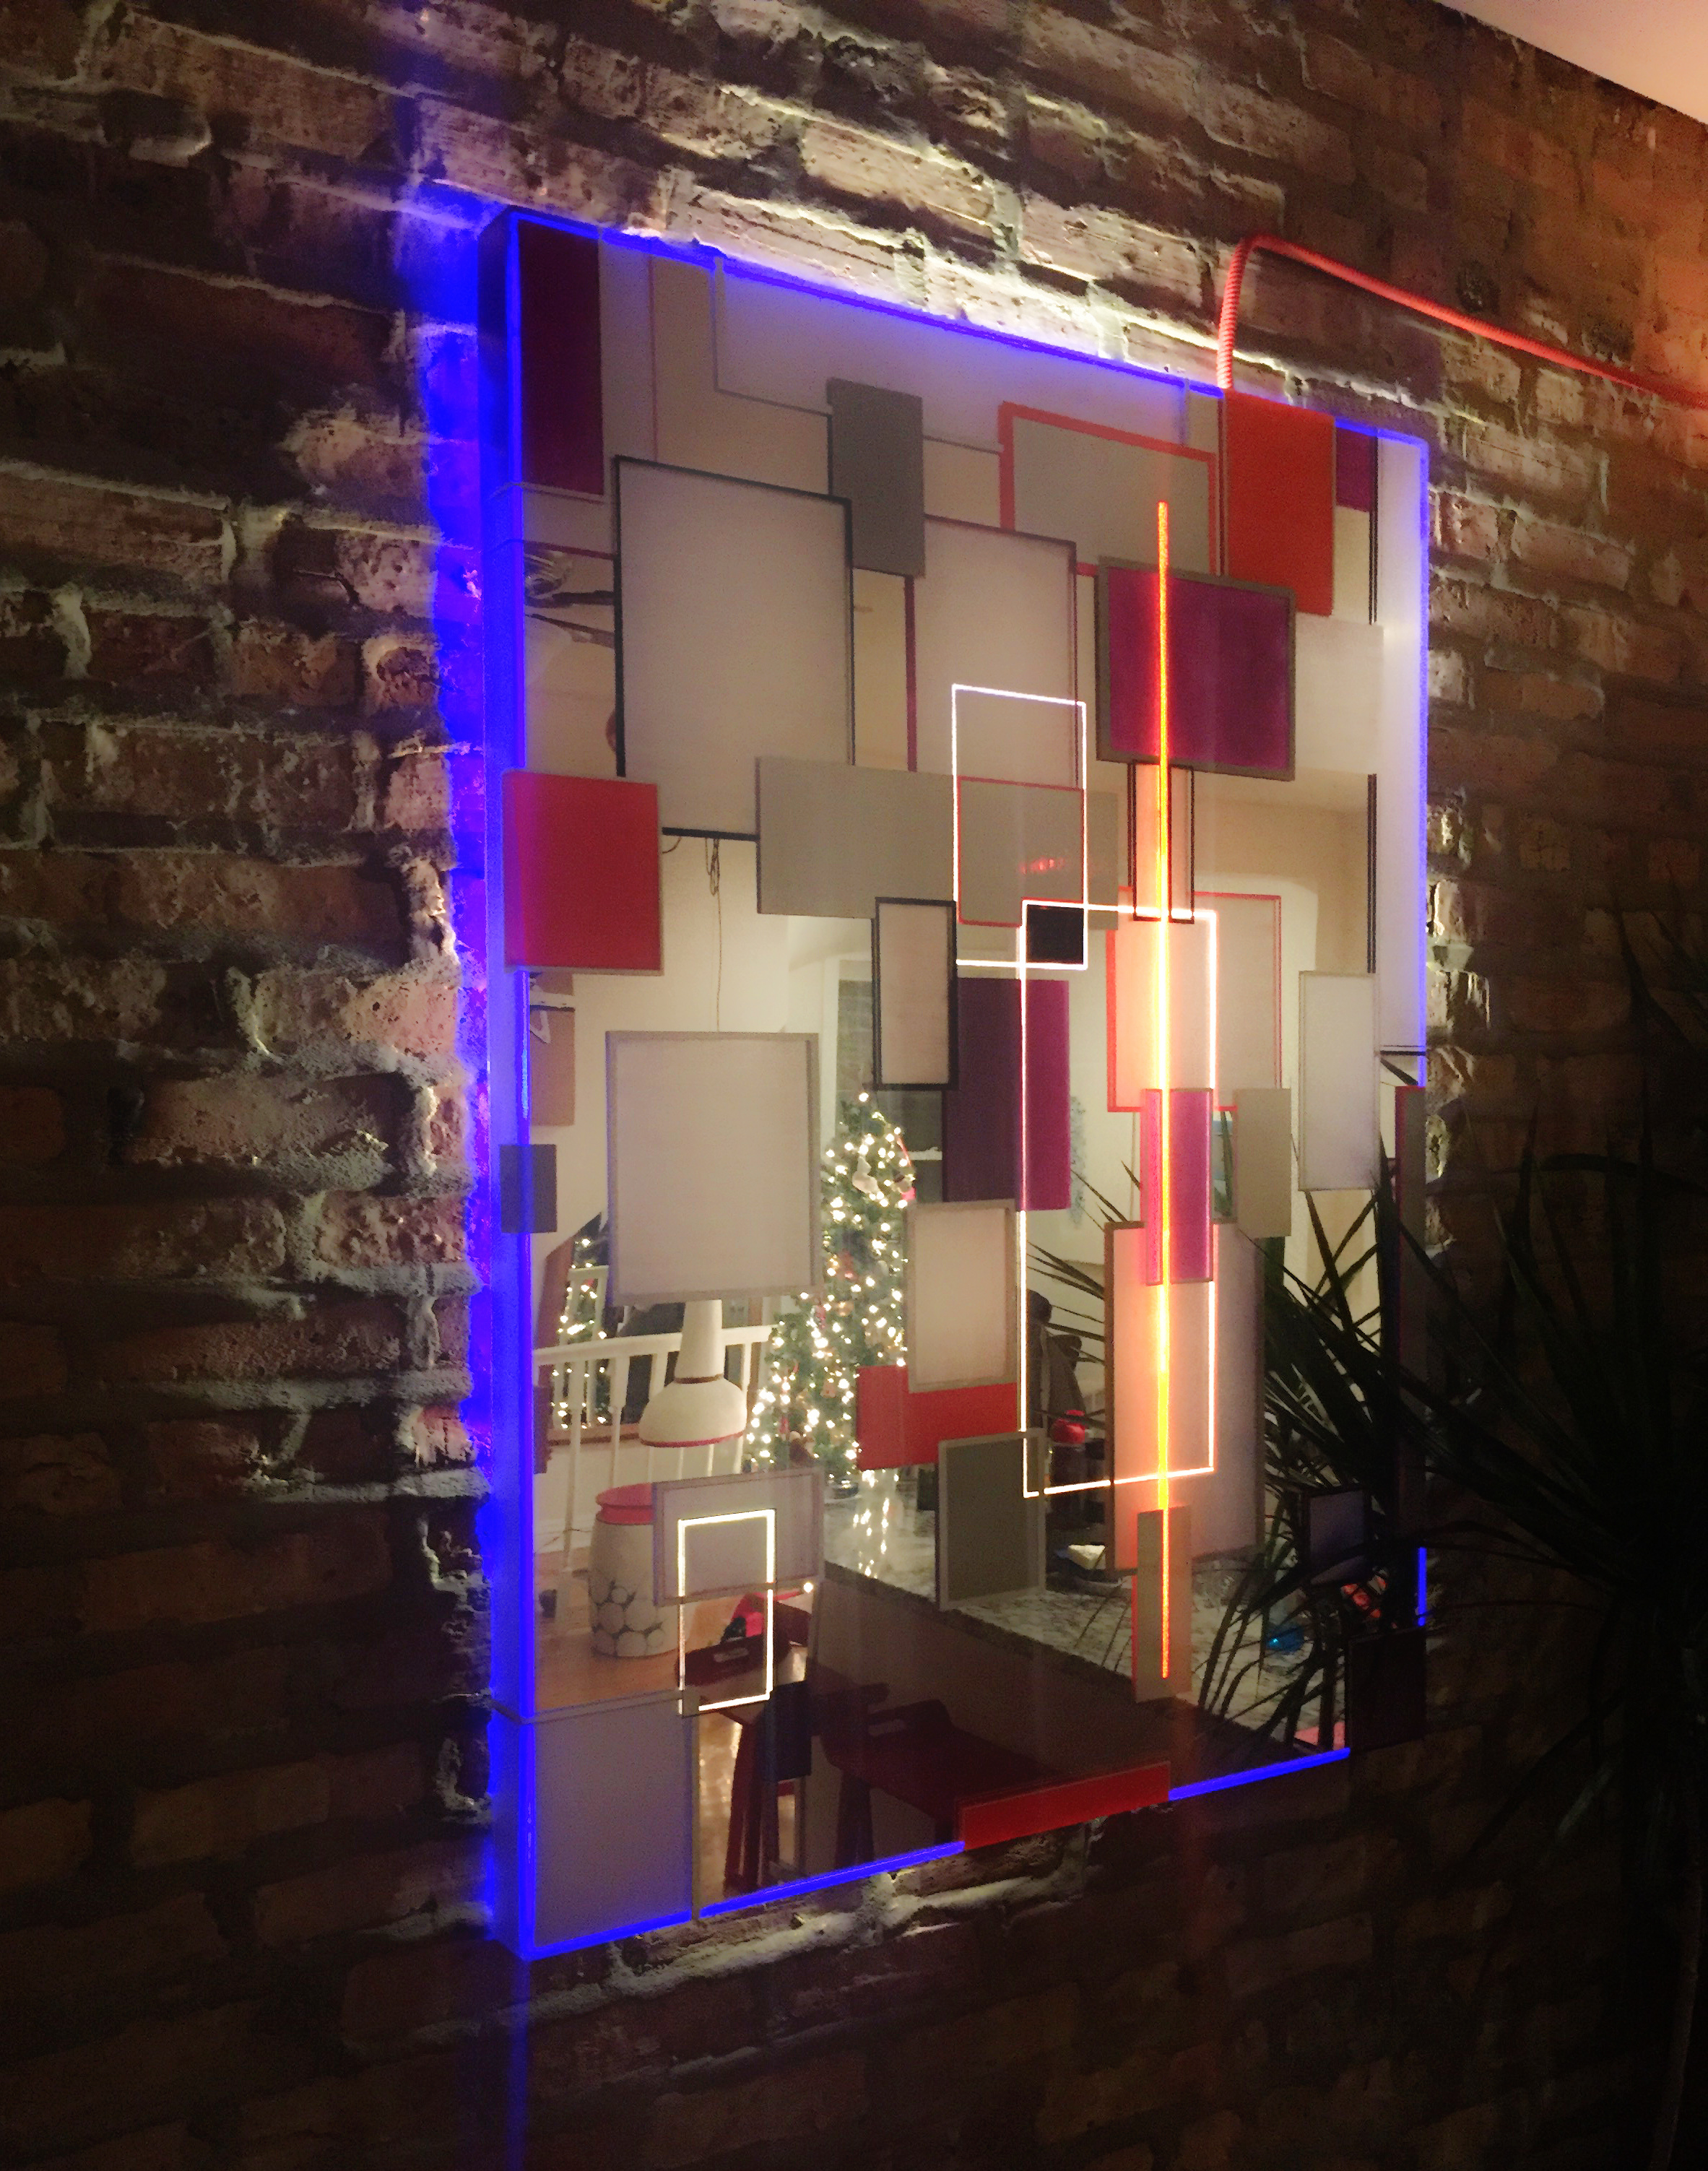 Light sculpture made of acrylic mirror, paint, LED, with blue and red colors entitled Beacon 7.